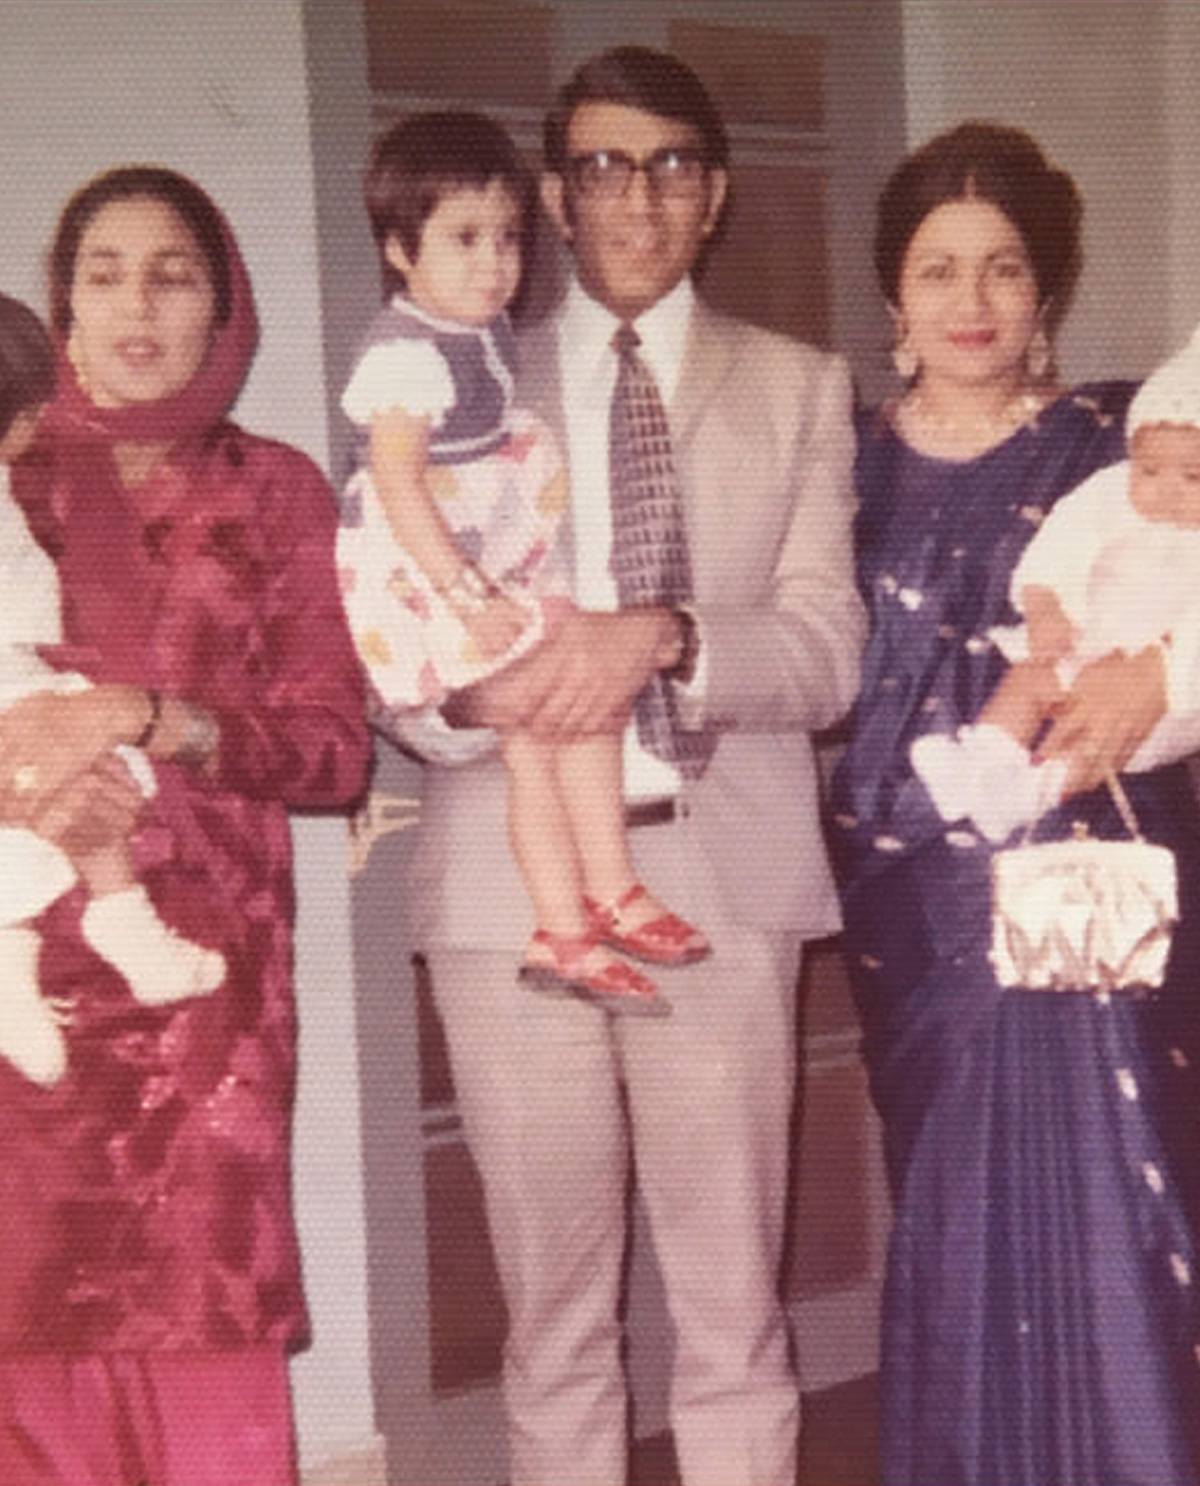 South Asian family picture from the 1970s.